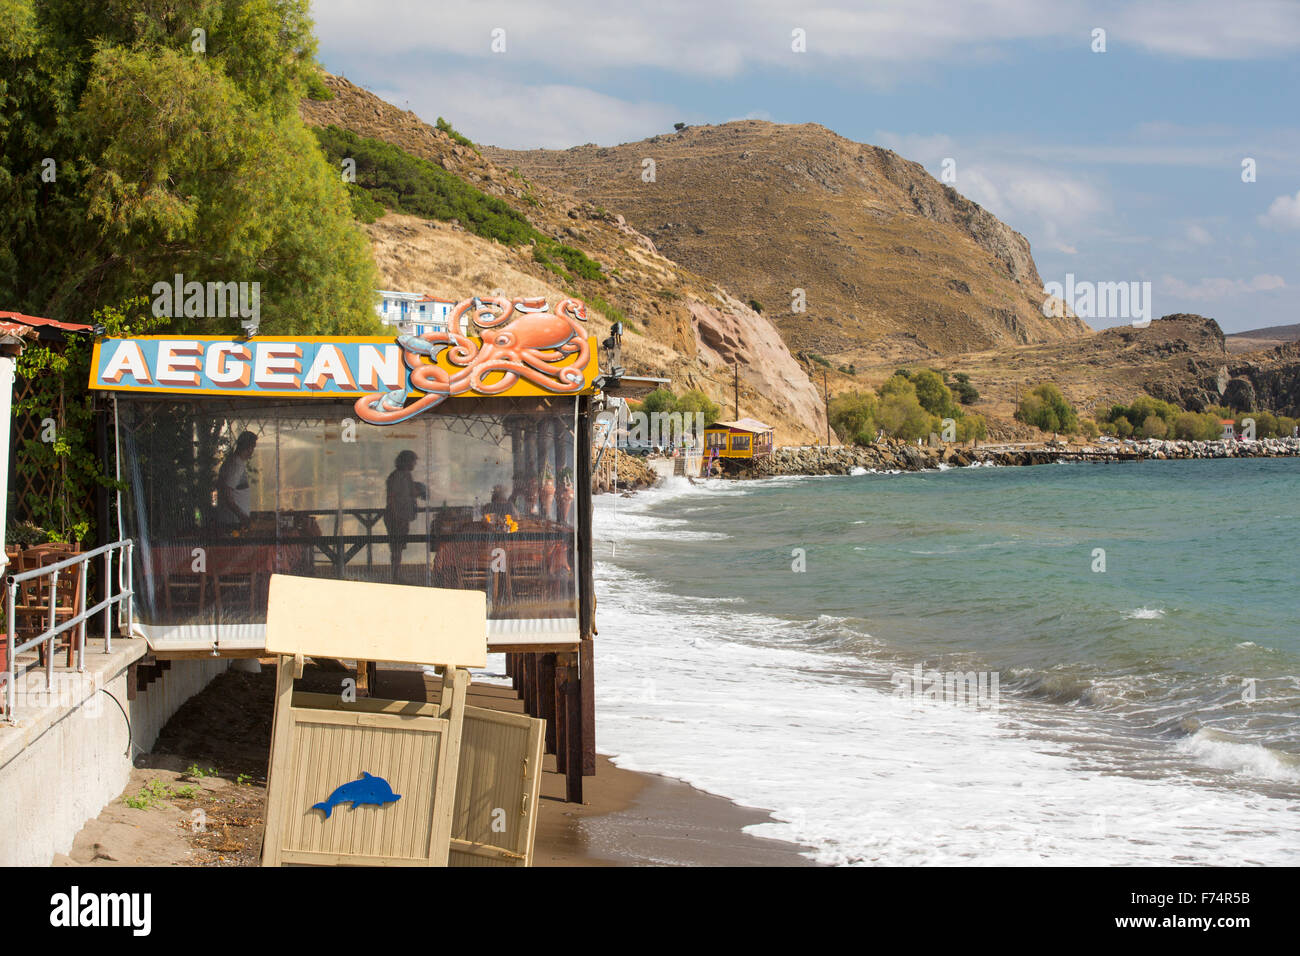 A taverna on the sea front in Skala Eresou, on Lesvos, Greece. Stock Photo